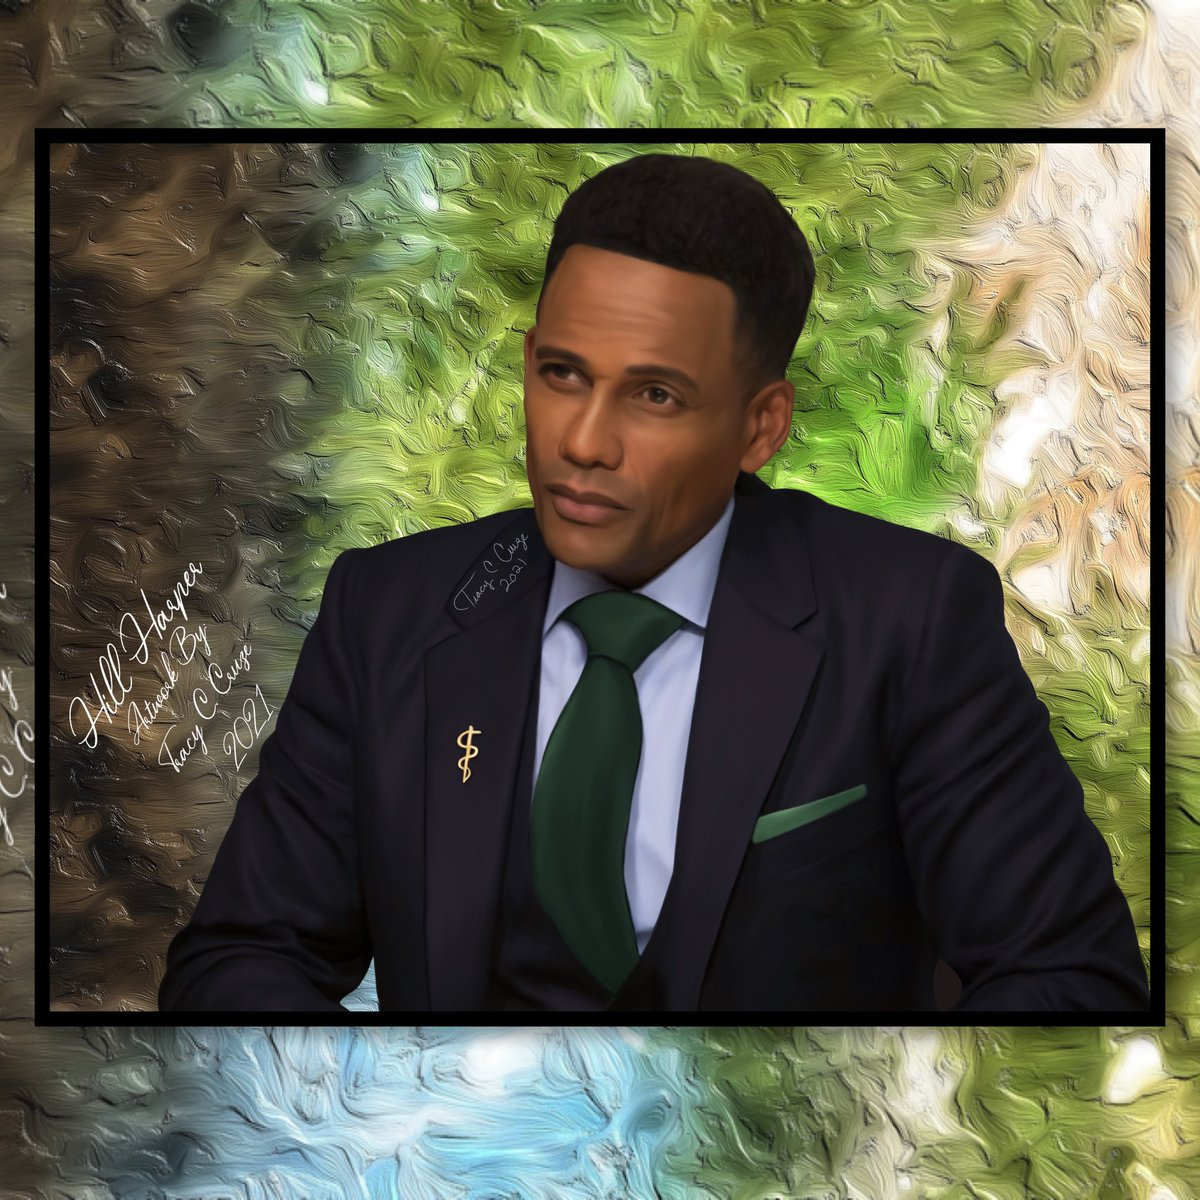 My newest #digital #painting of the suave @hillharper who one just has to love as the smooth Dr. Marcus Andrews! And since we have to wait 2 weeks for a new episode, it's time for a little Good Doctor ❤️! #TheGoodDoctor #drmarcusandrews #paintings #drawings #marcusandrews